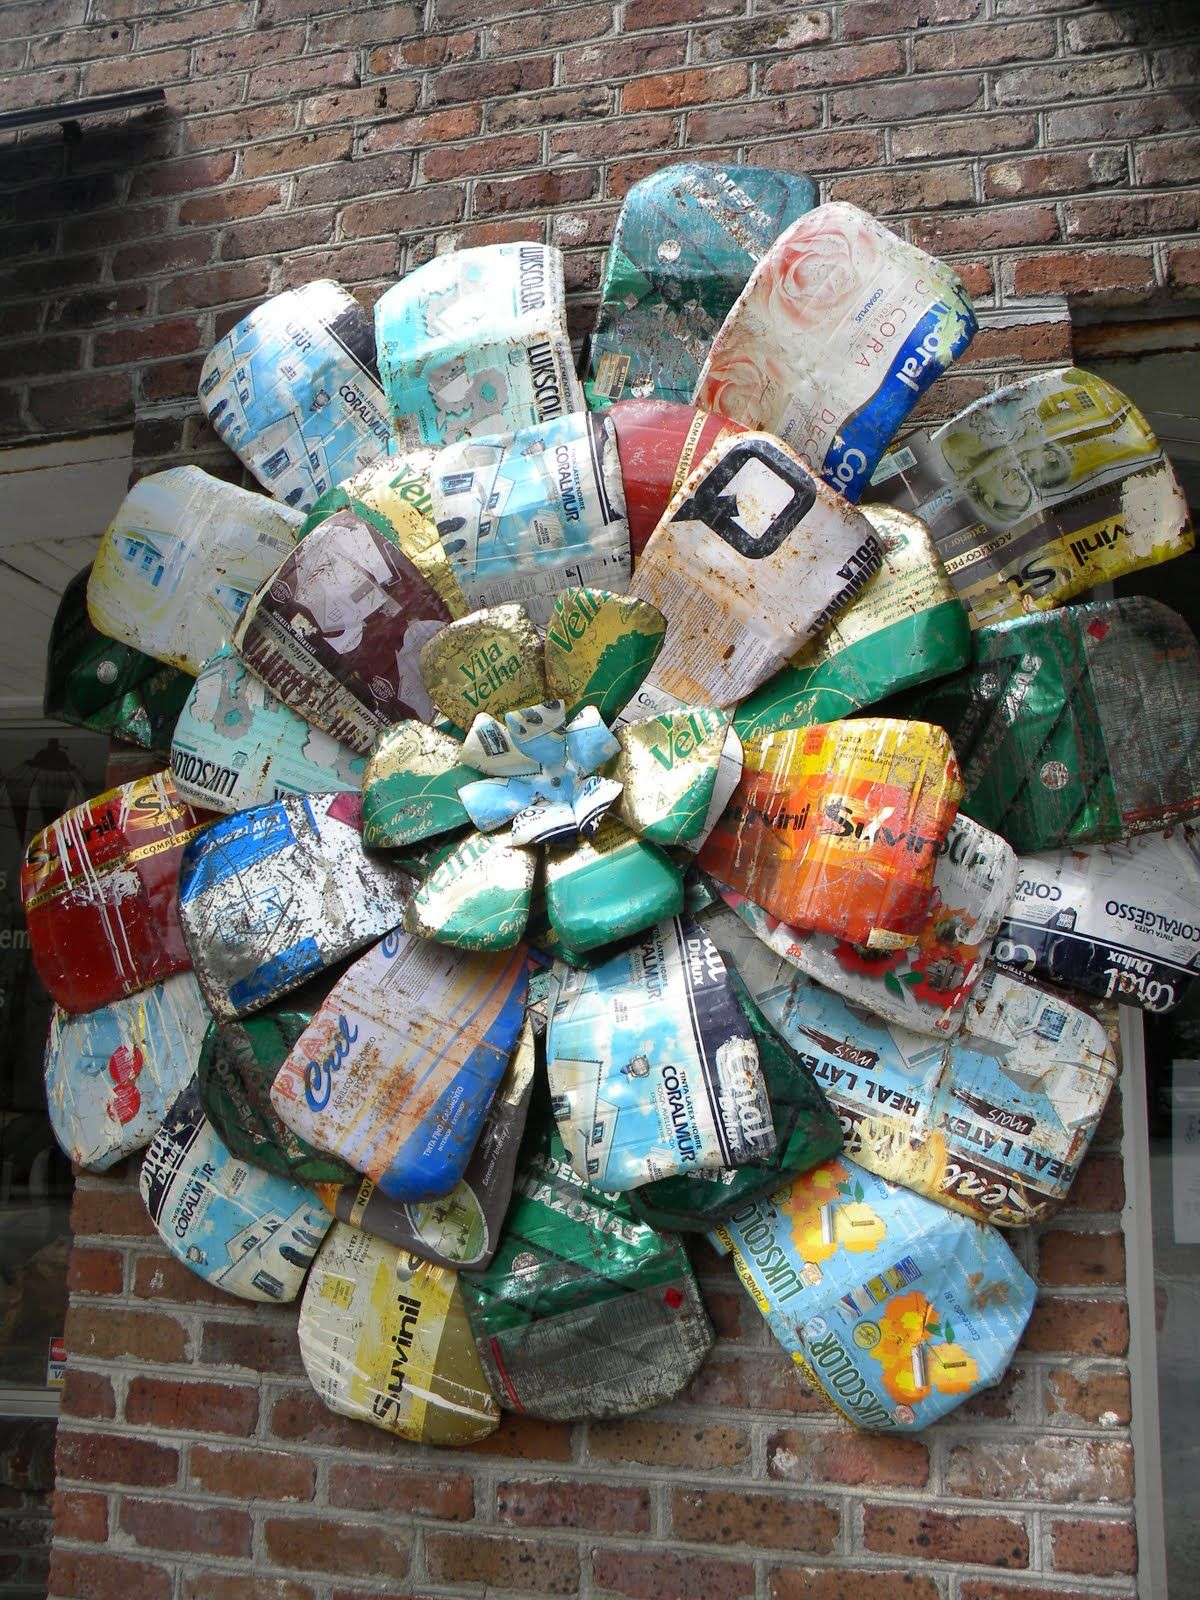 Yard art ideas am lovinu this metal flower made from recycled cans